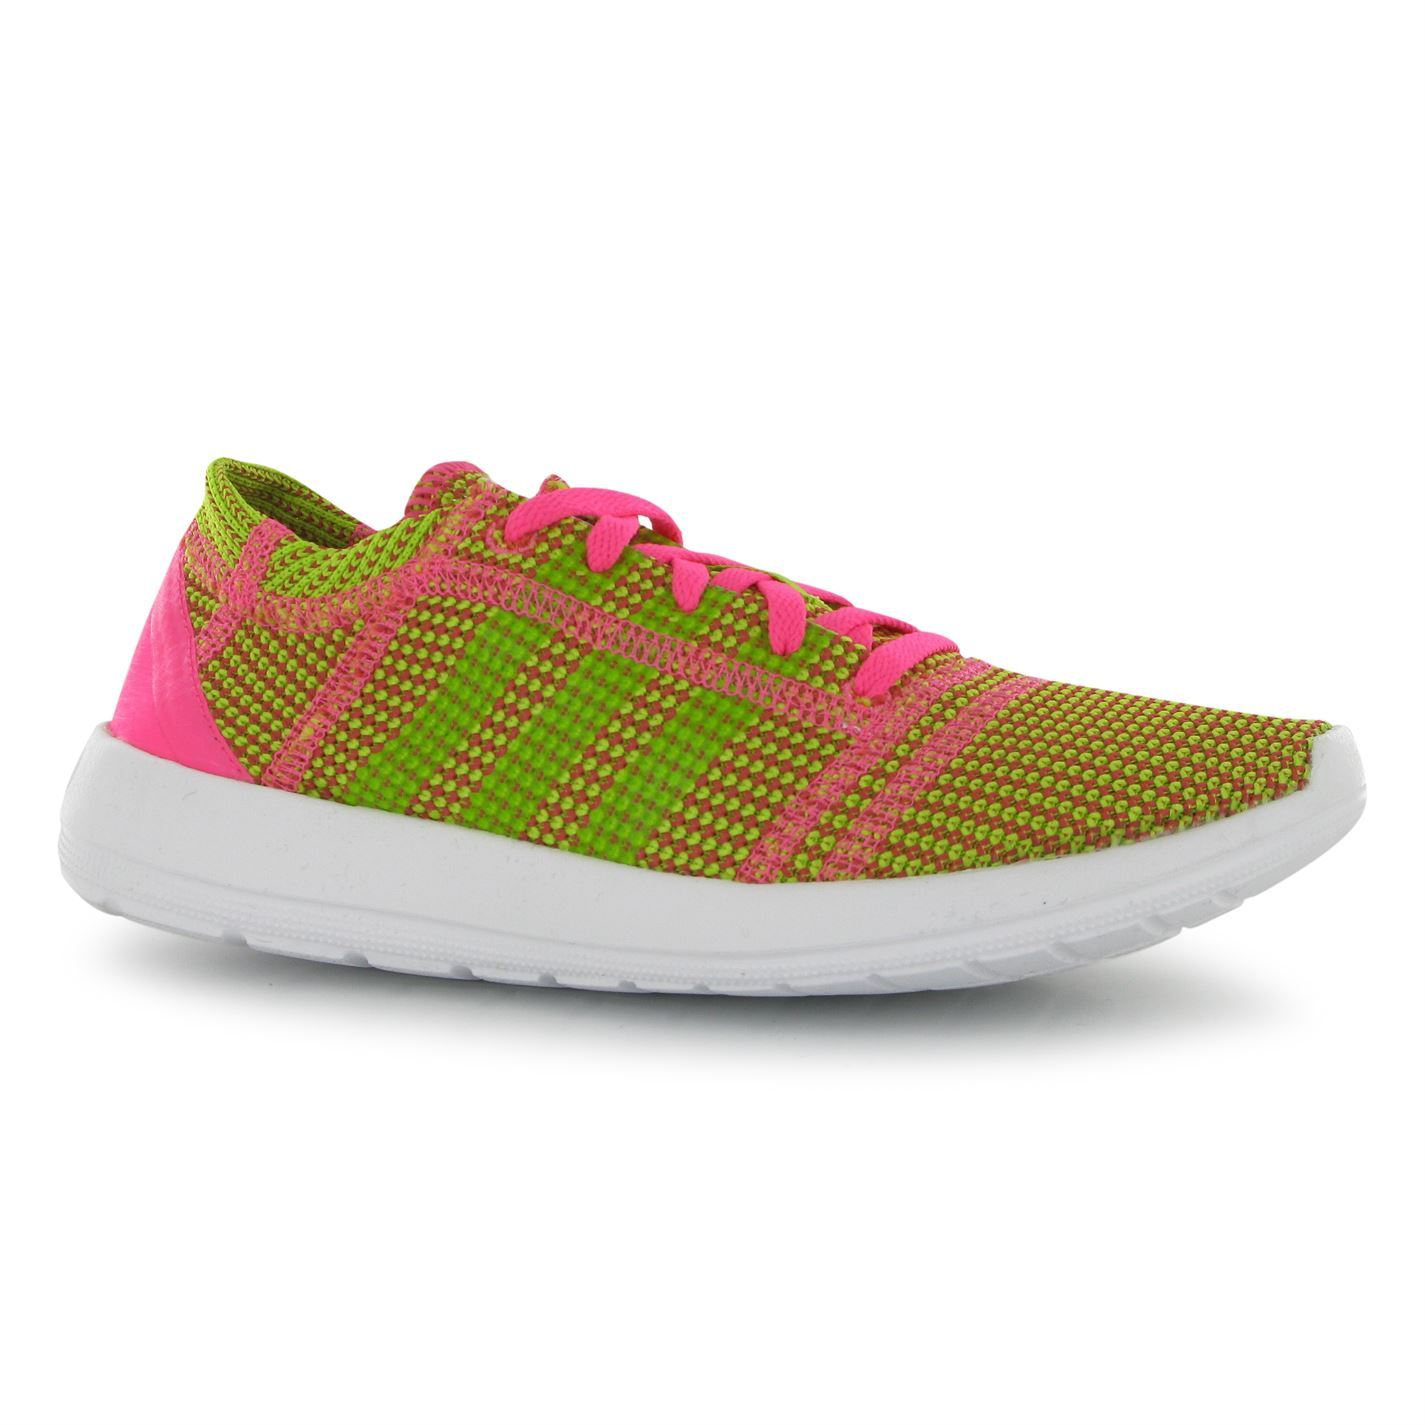 adidas Womens Element Refine Running Shoes Casual Sports Trainers Footwear